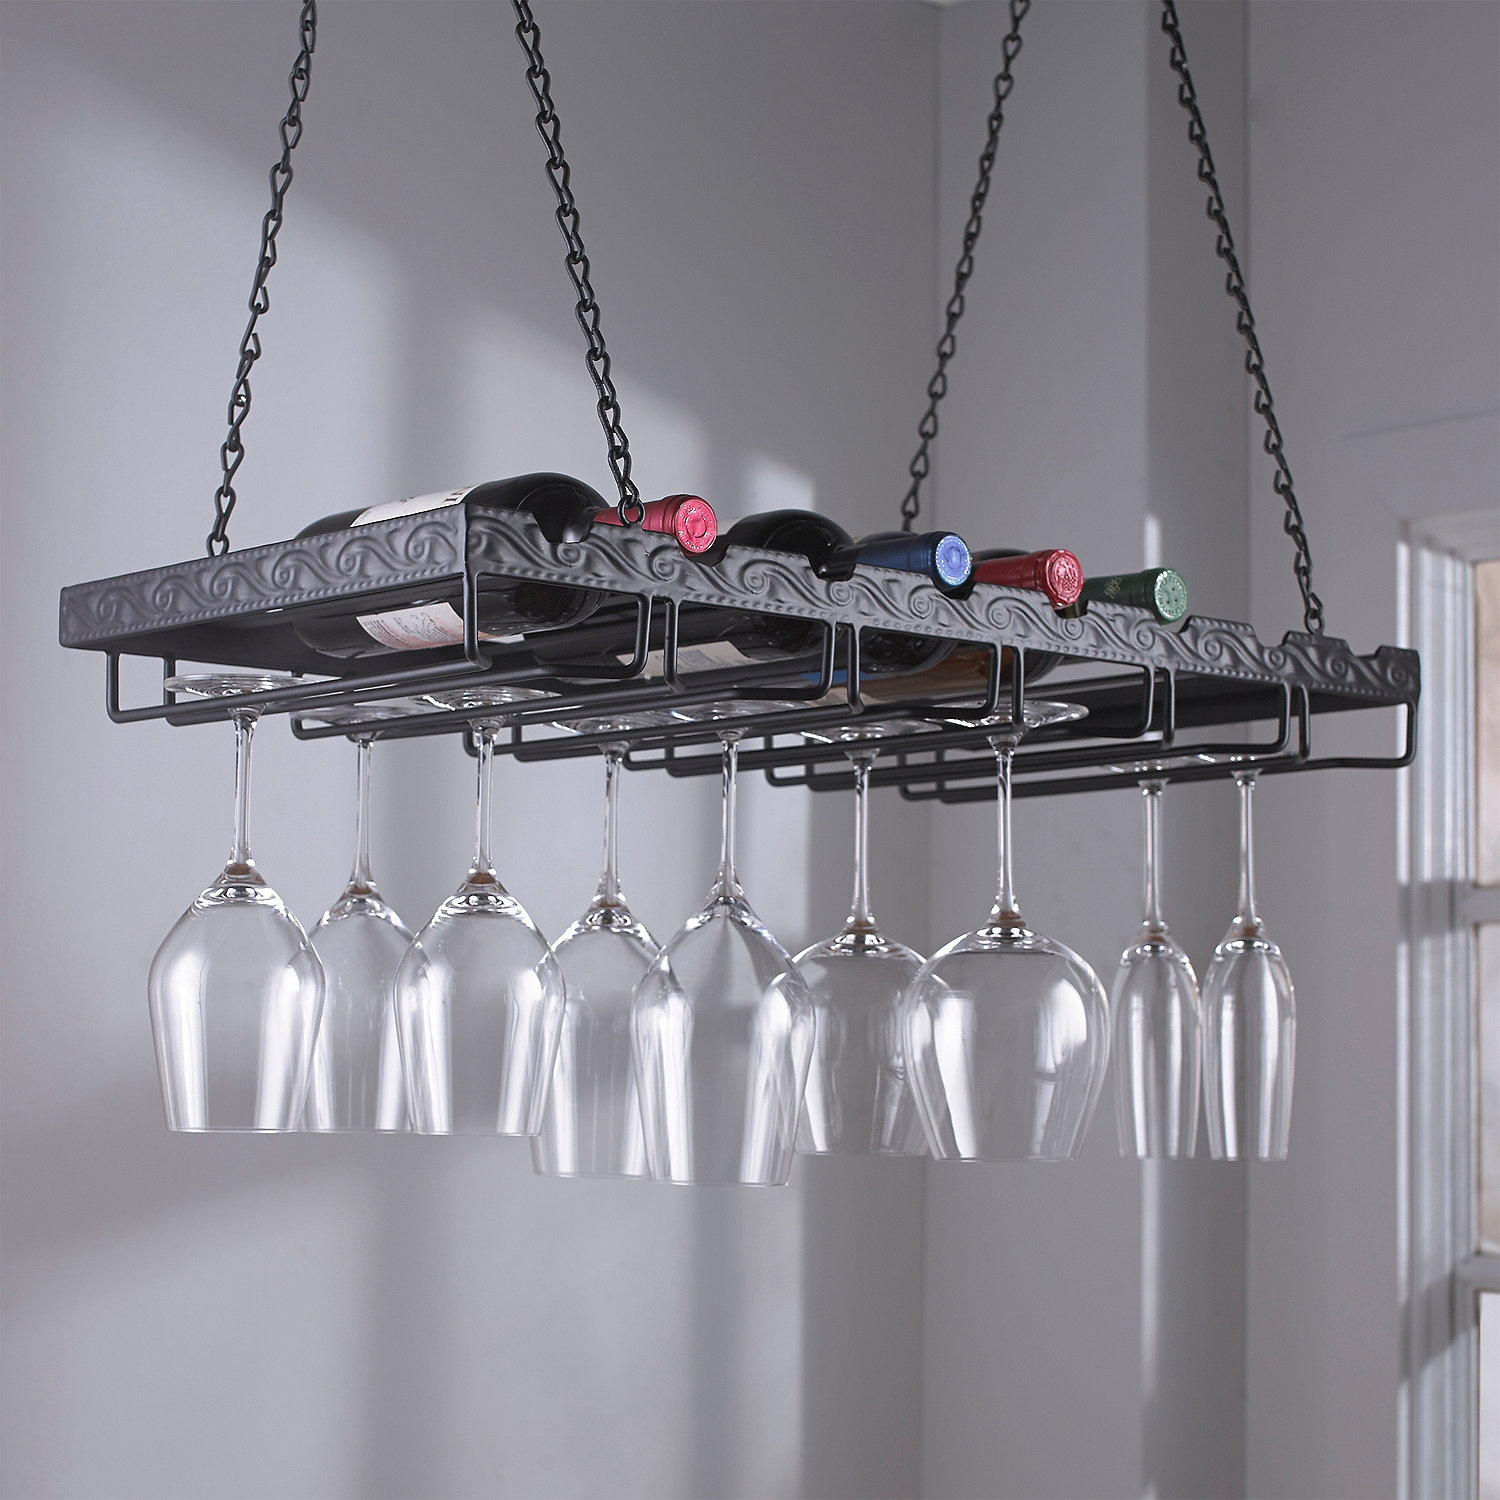 Suspended Shelves From Ceiling: 15 Best Ideas Hanging Glass Shelves From Ceiling